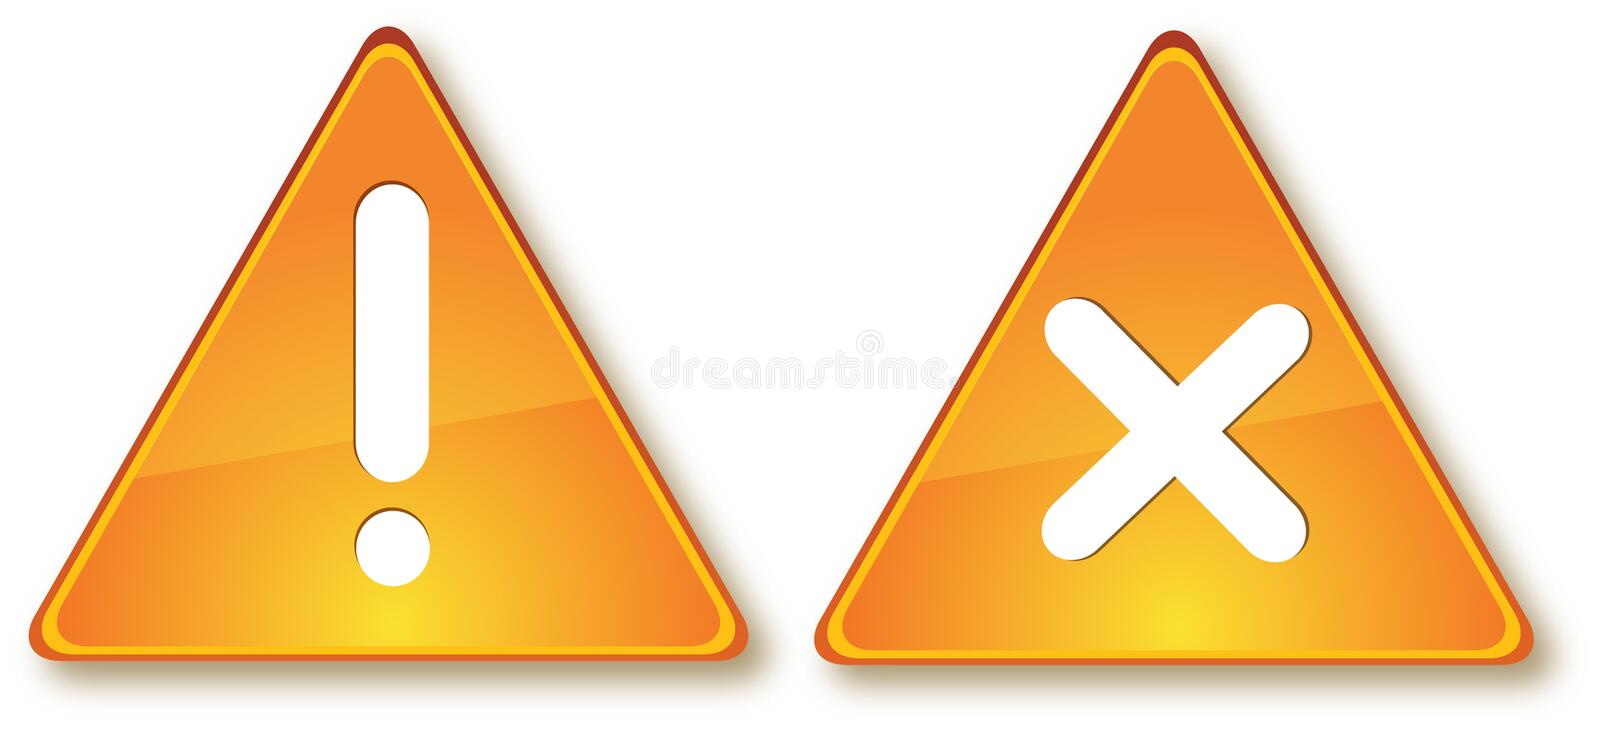 Two Signs Stock Image